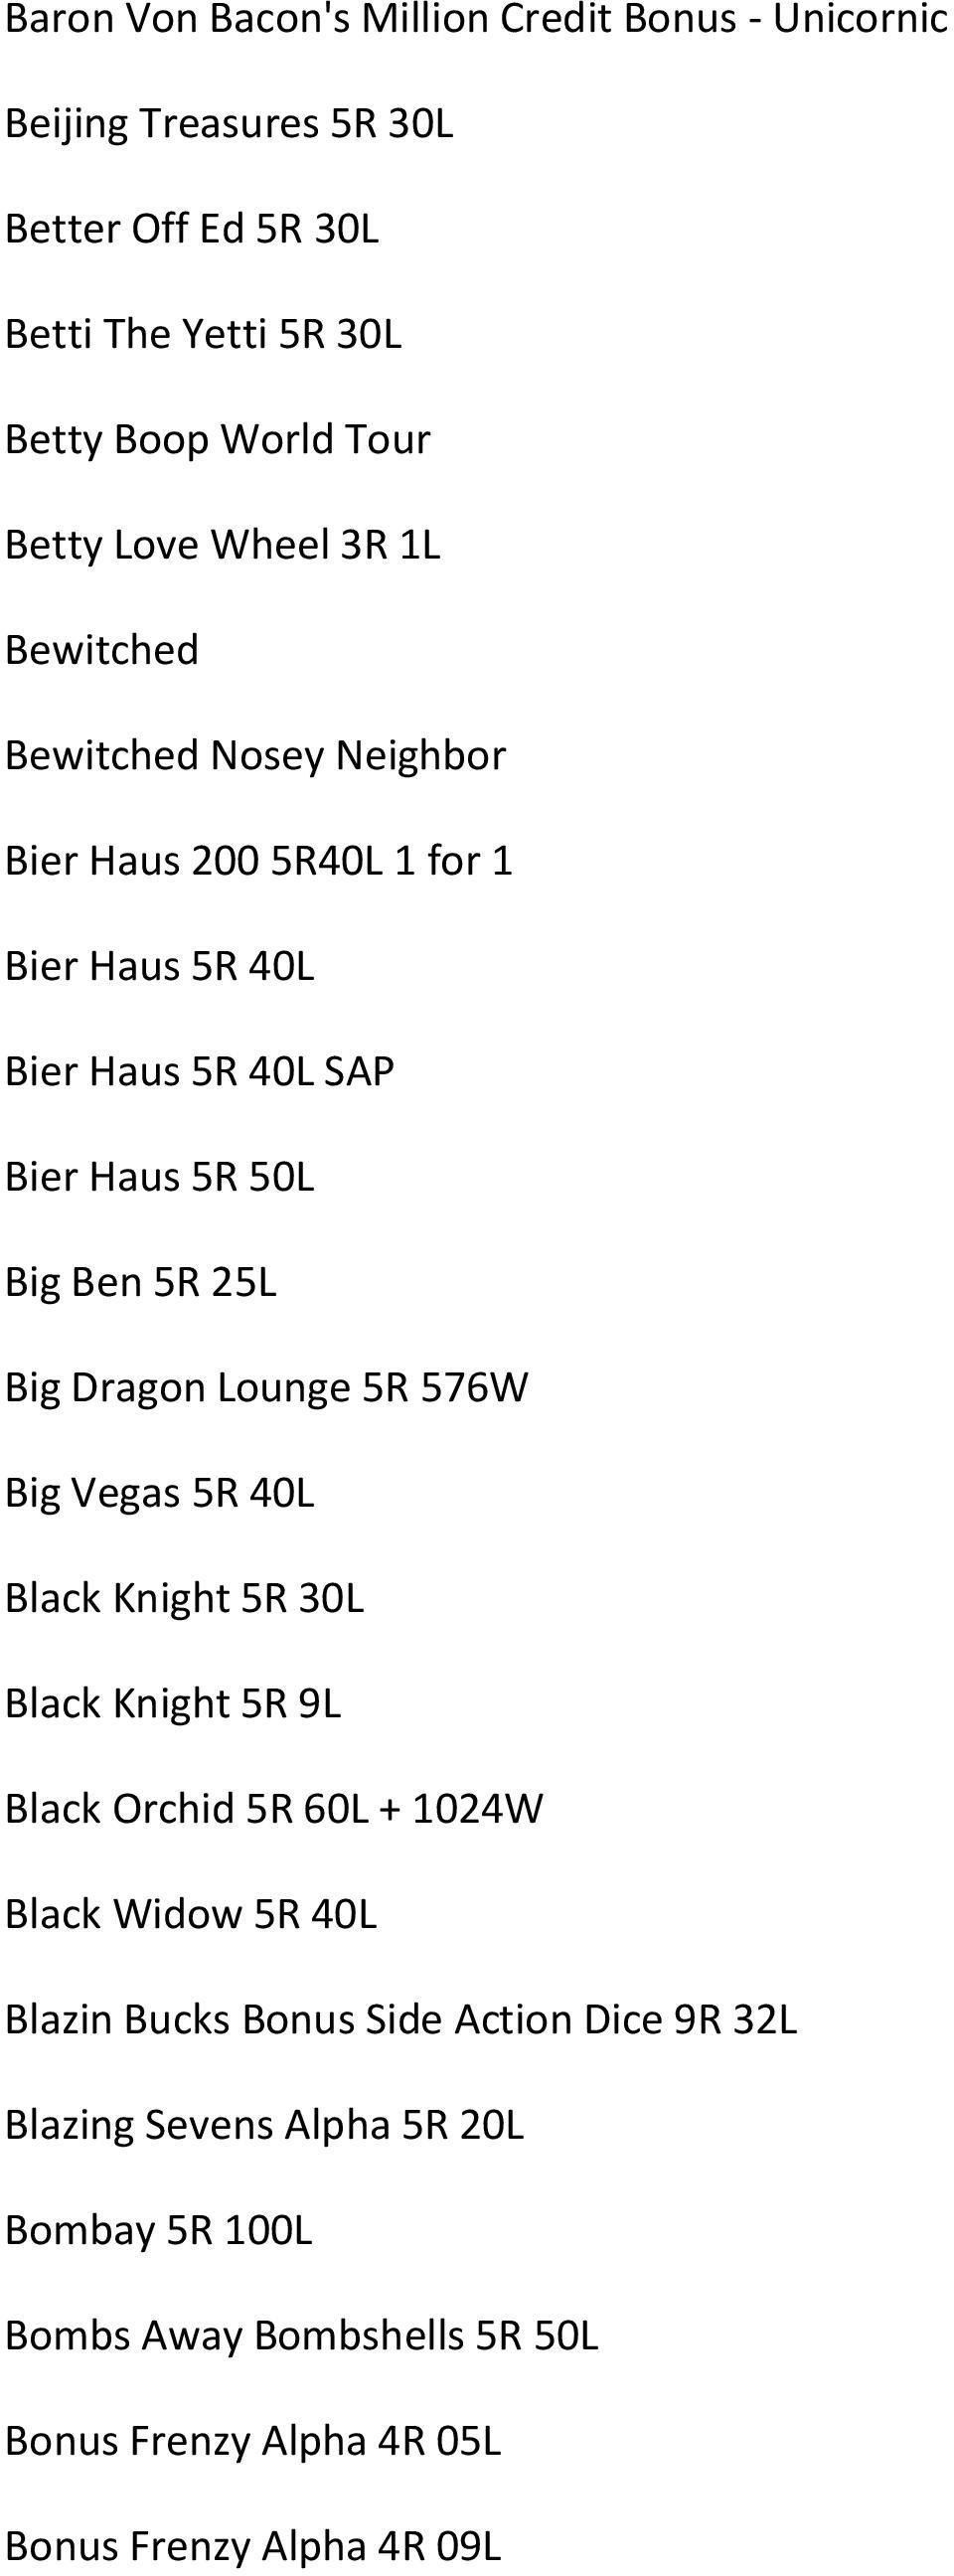 25L Big Dragon Lounge 5R 576W Big Vegas 5R 40L Black Knight 5R 30L Black Knight 5R 9L Black Orchid 5R 60L + 1024W Black Widow 5R 40L Blazin Bucks